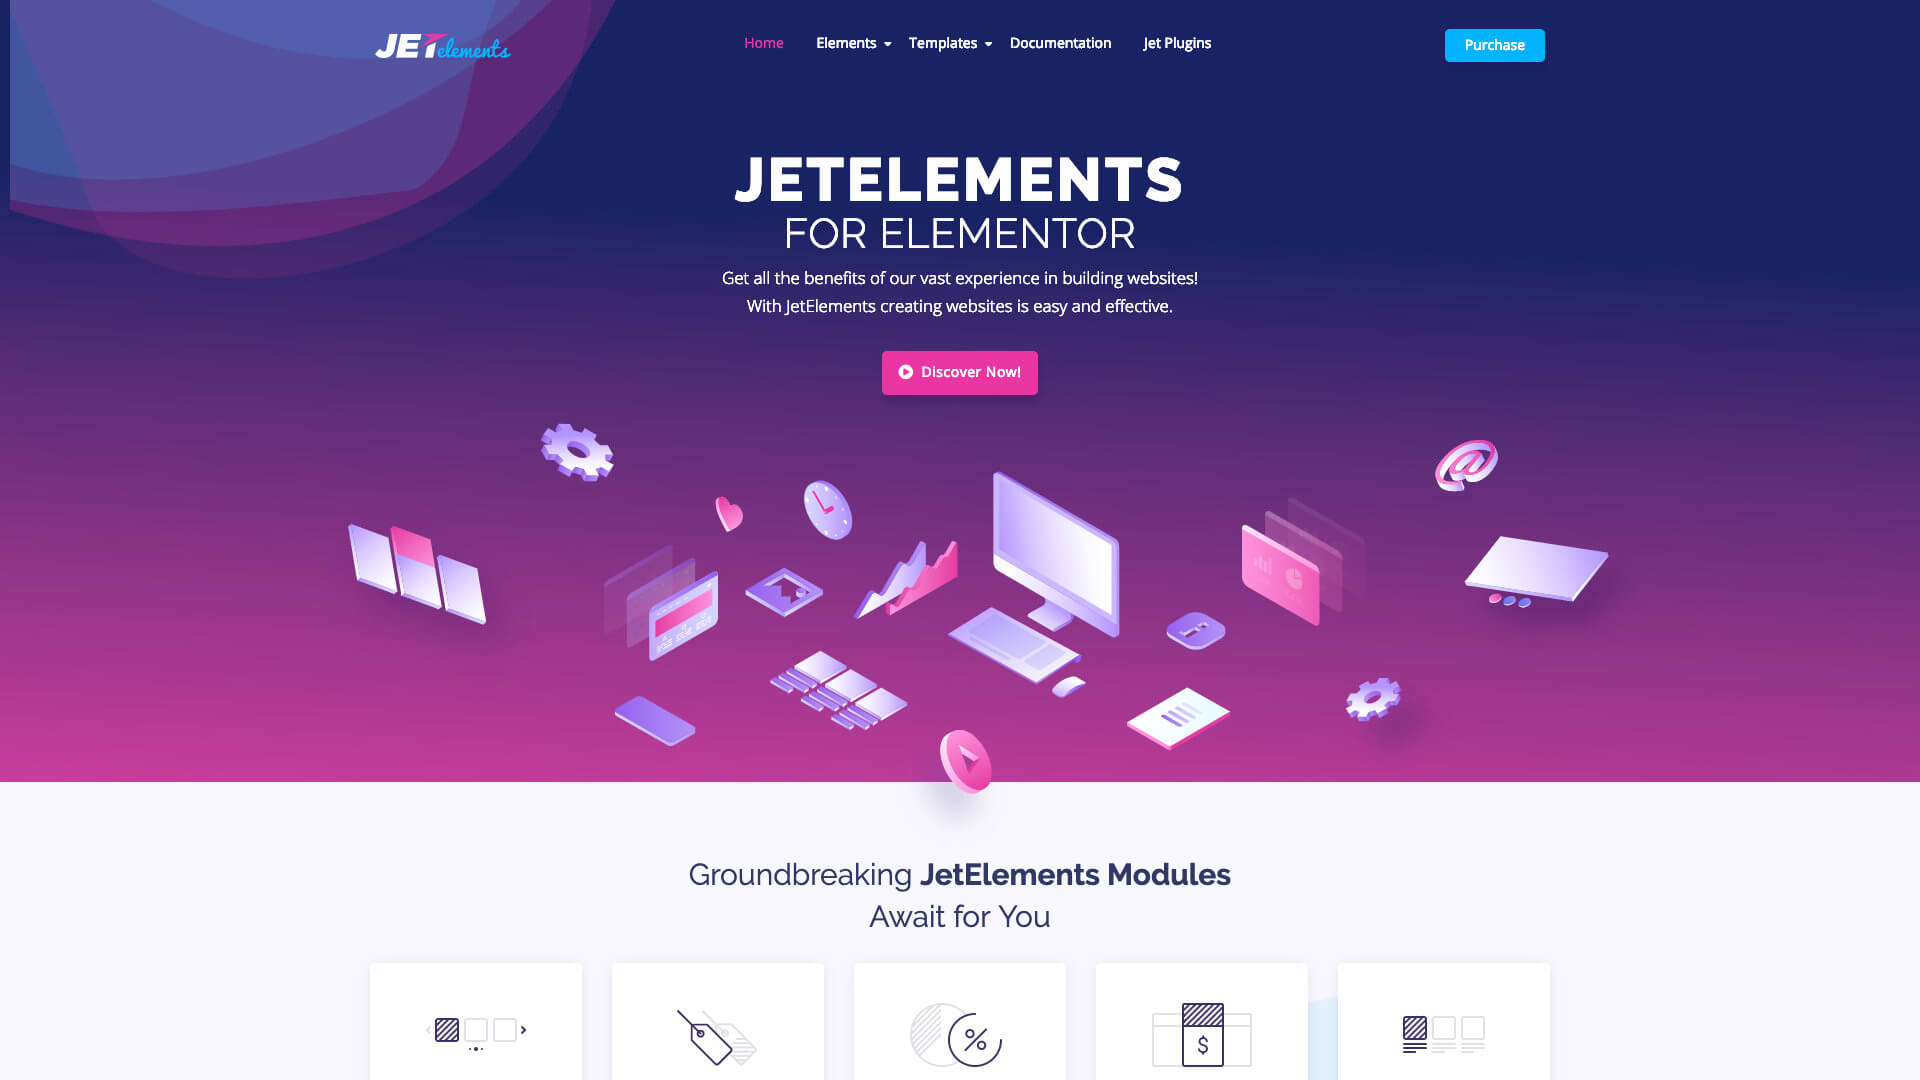 How To Add Parallax Effect In Elementor: 2 - JetElements